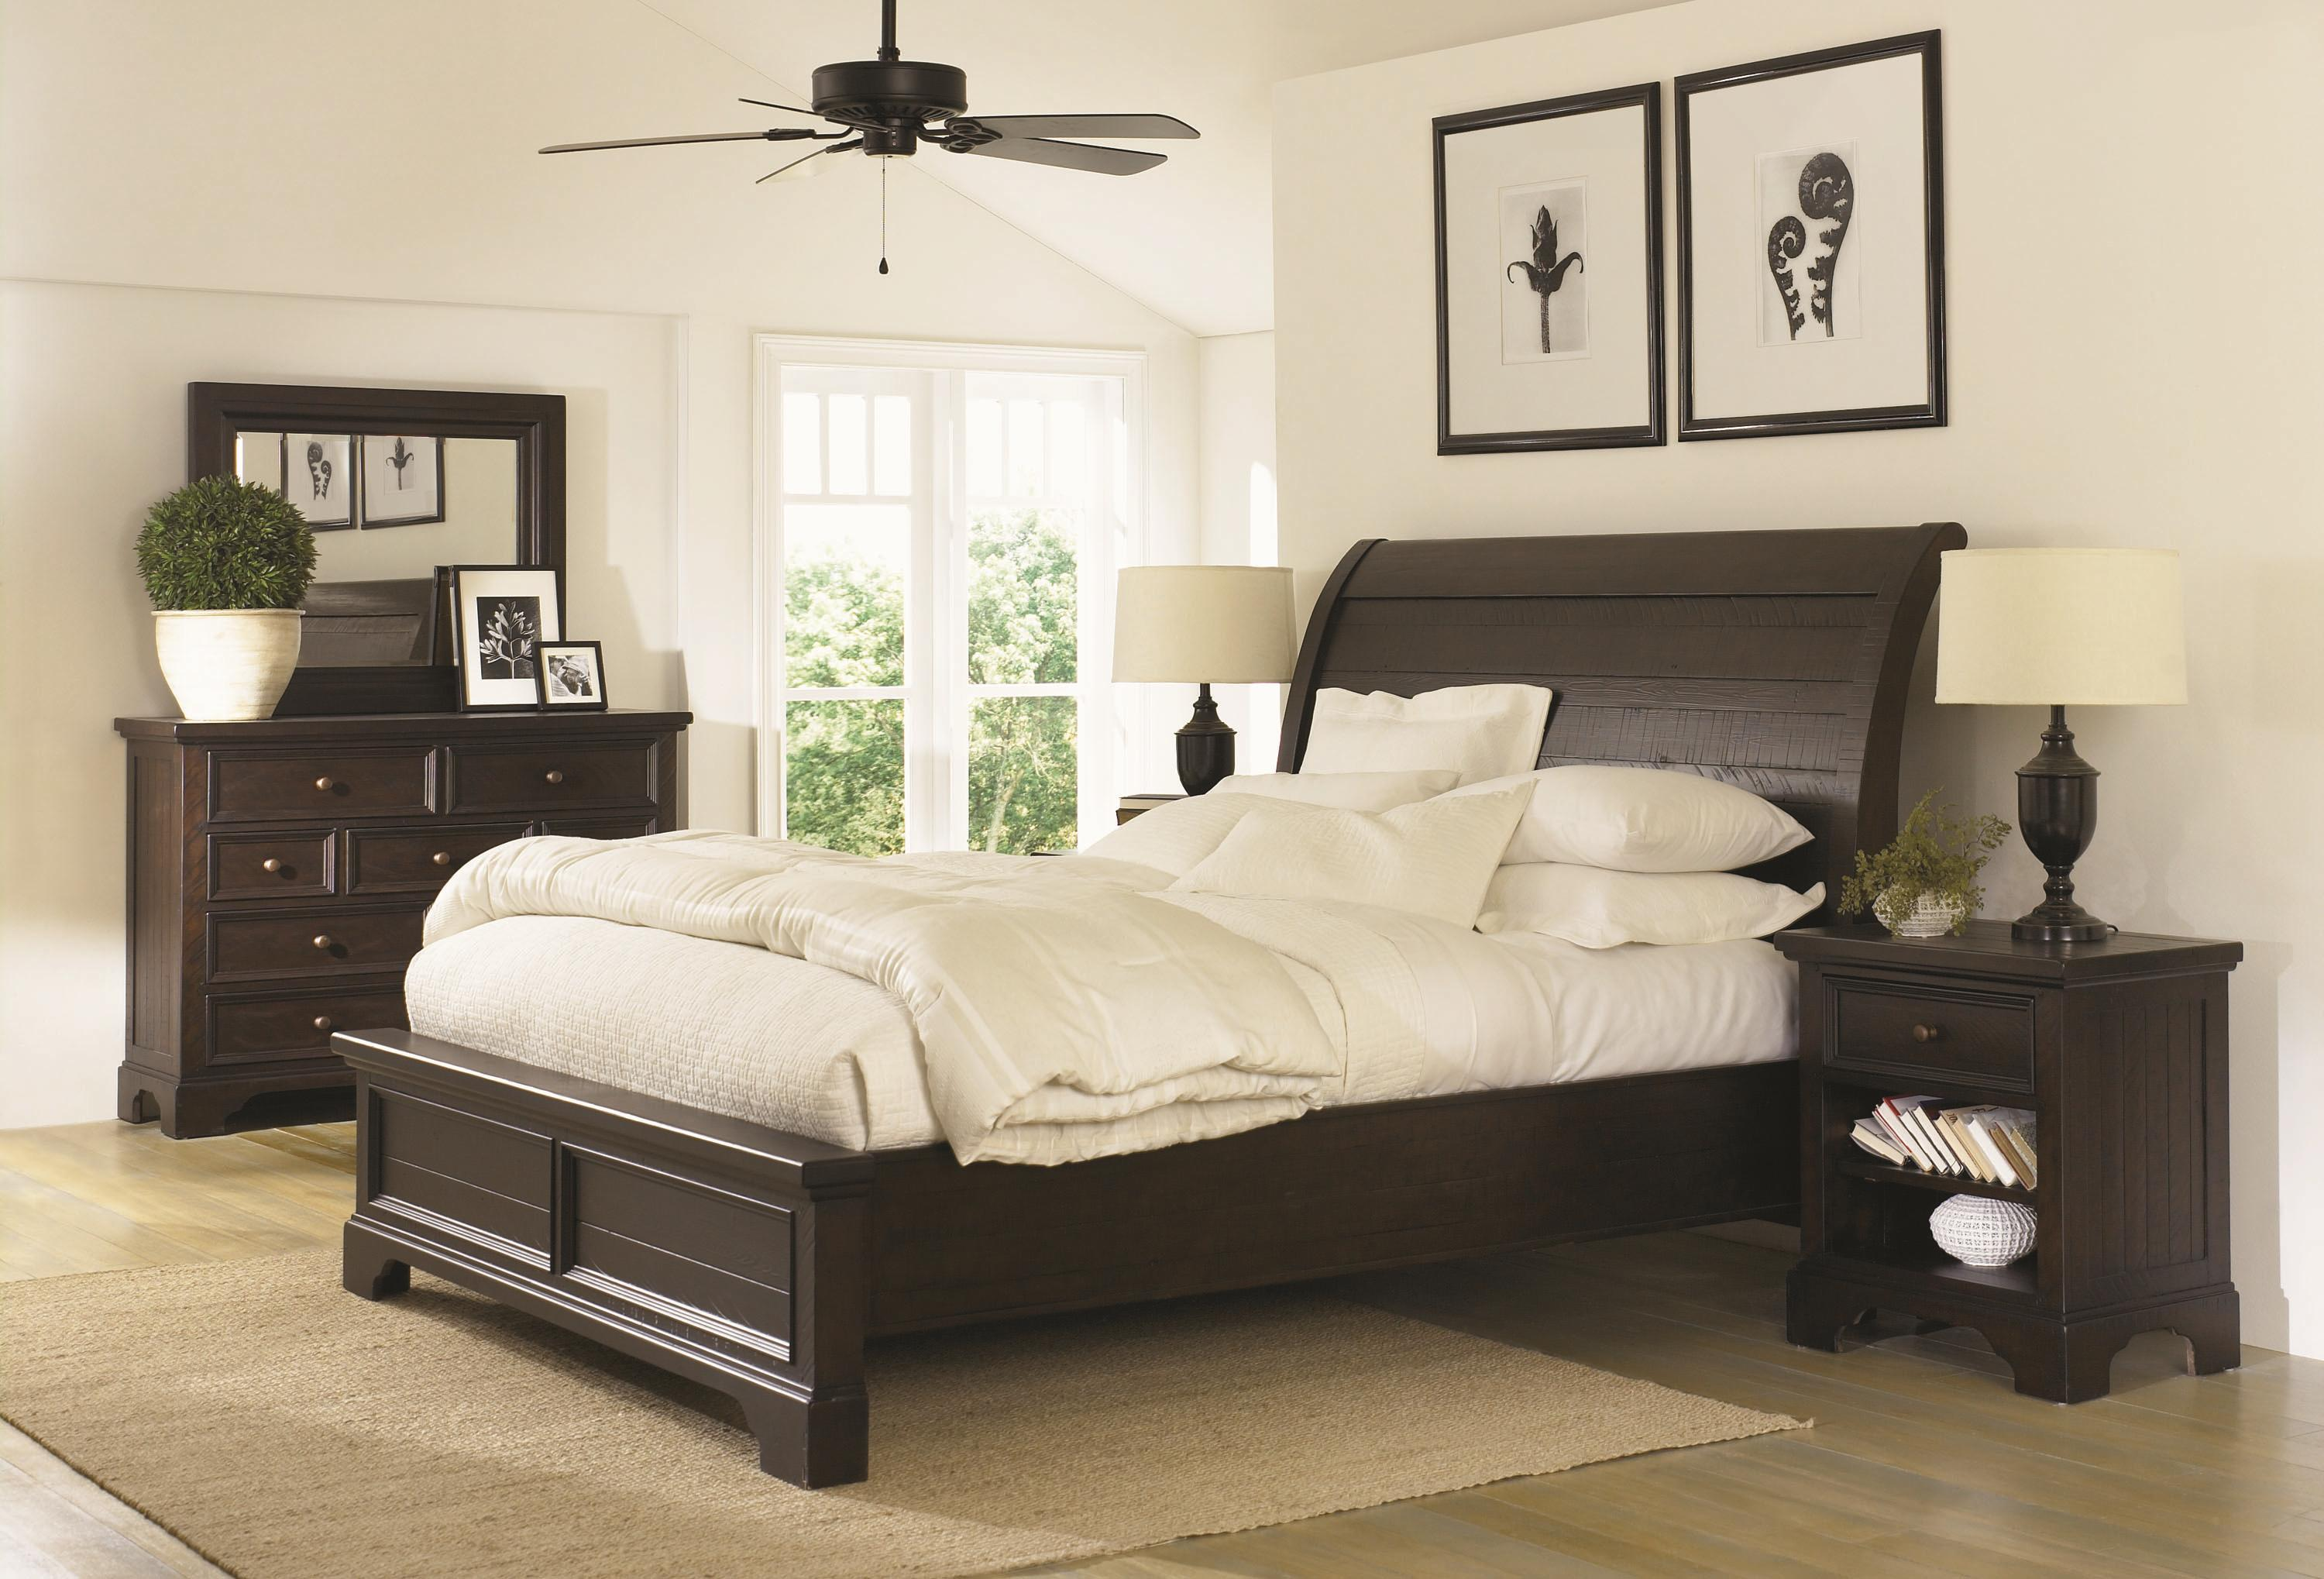 Aspenhome Bayfield Queen Sleigh Bed With Adjustable Bed Slats Ahfa Sleigh Beds